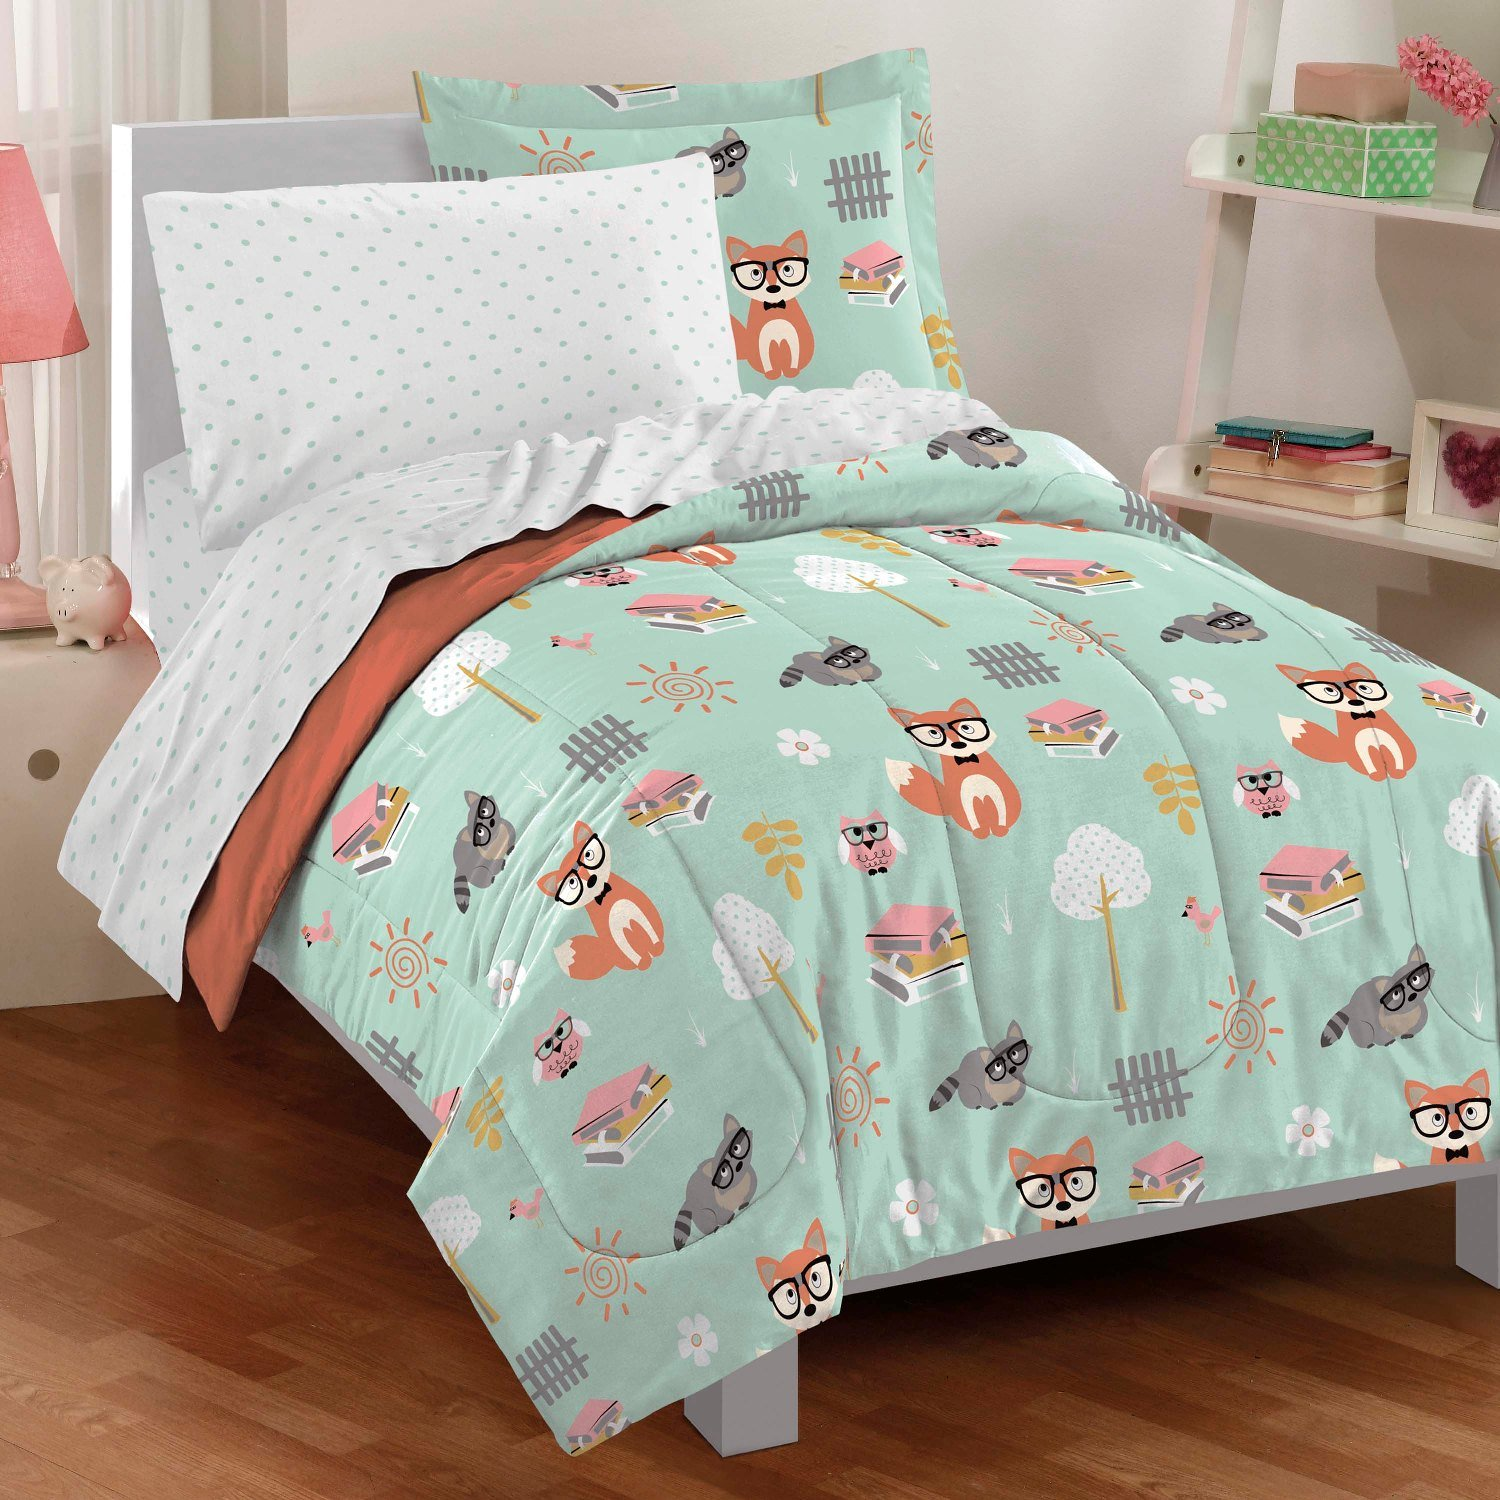 dream FACTORY Casual Woodland Friends Comforter Set, Twin, Green by dream FACTORY (Image #1)